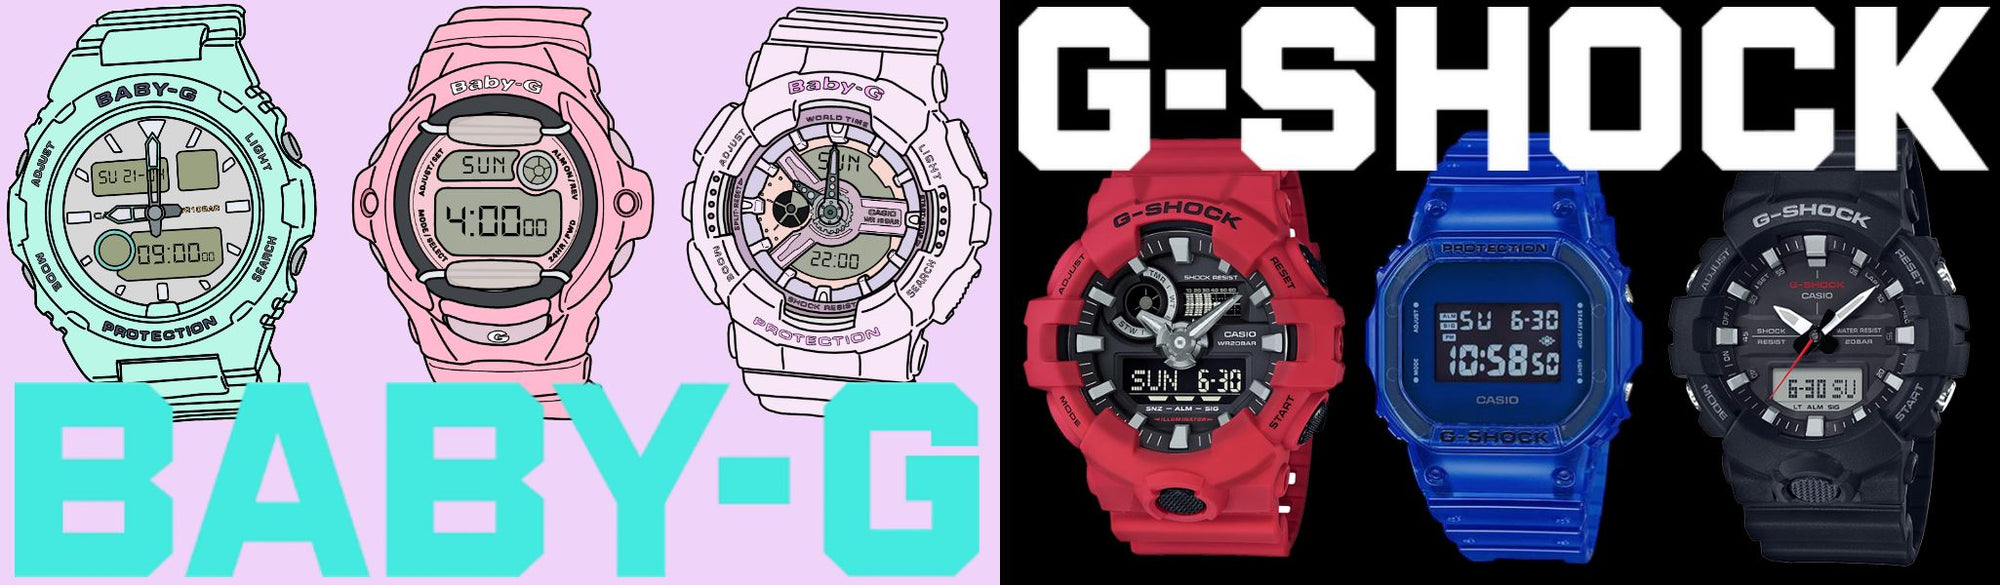 Casio Watches G-Shock and Baby-G